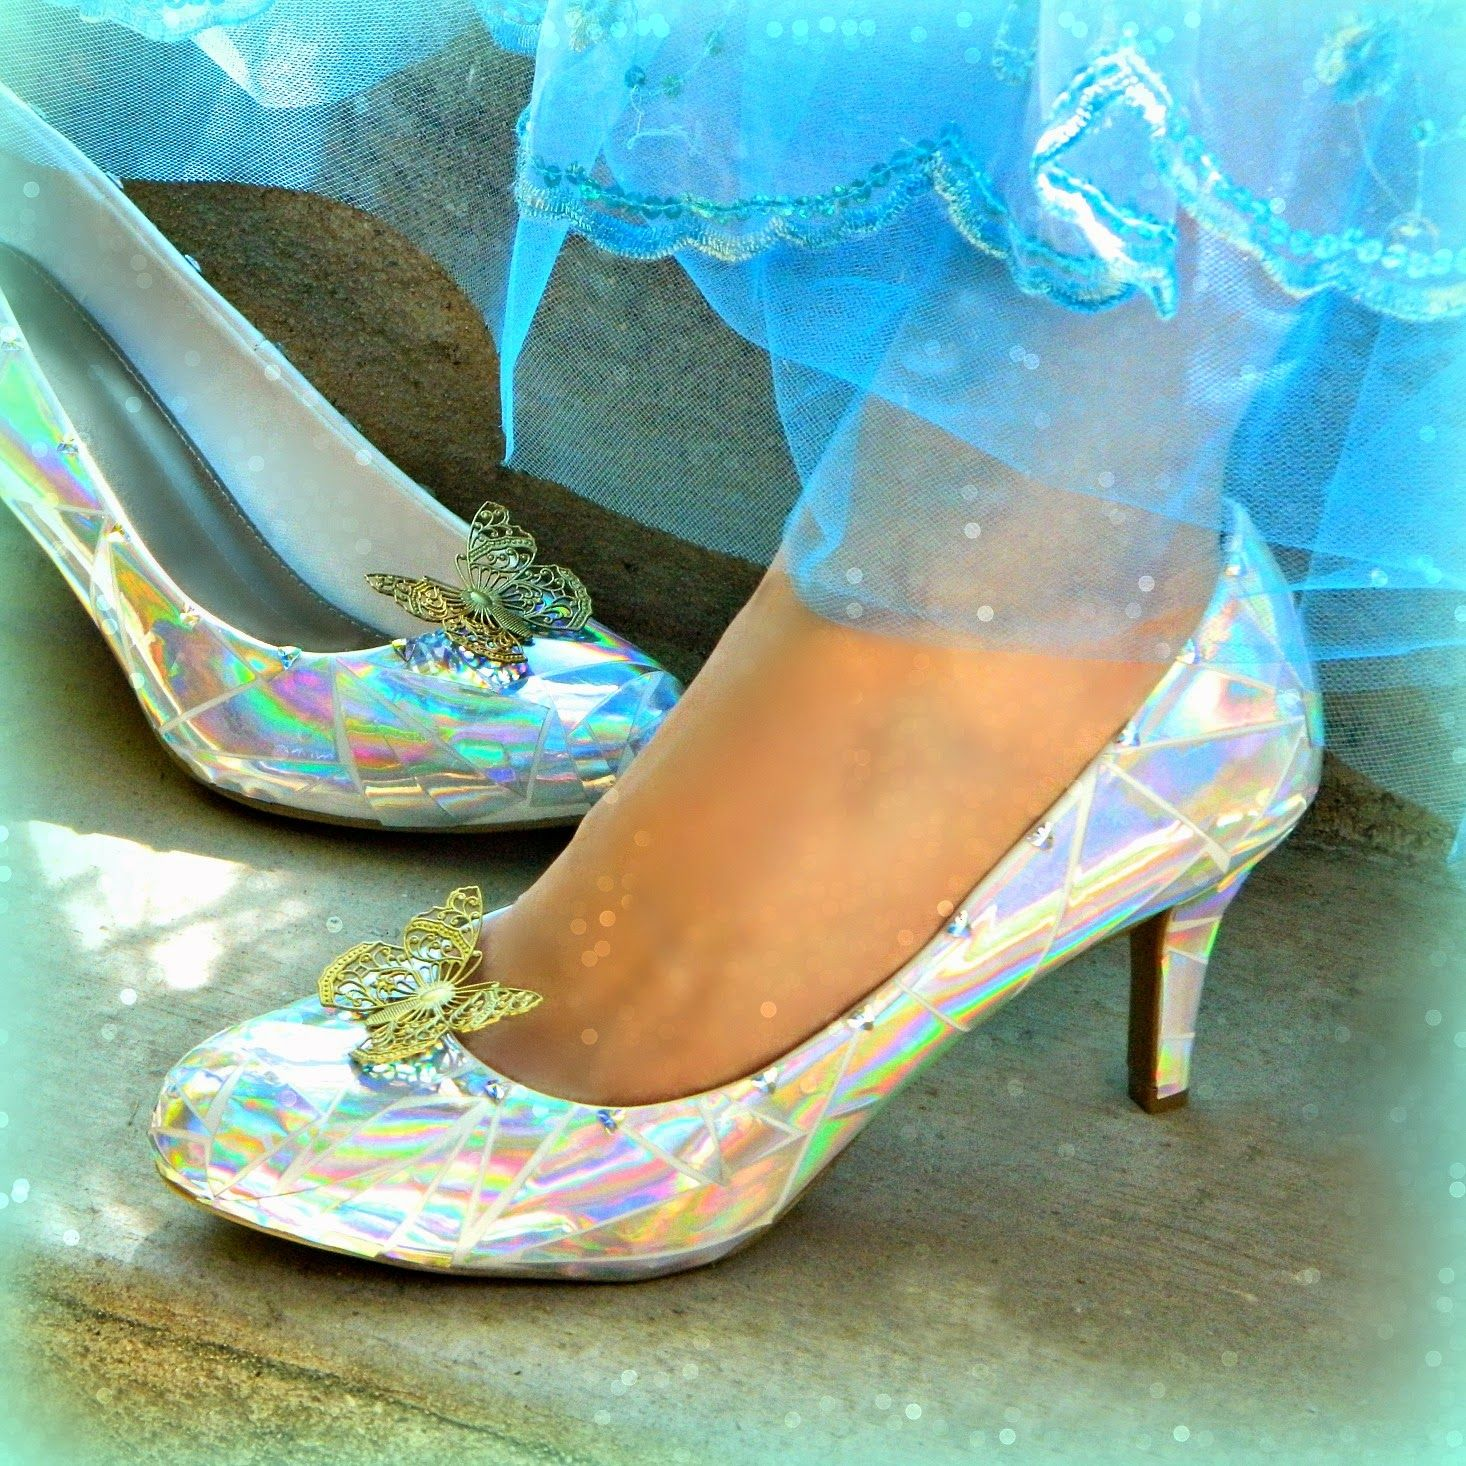 Cinderella S Glass Slippers Diy Diy Slippers Cinderella Shoes Cinderella Cosplay